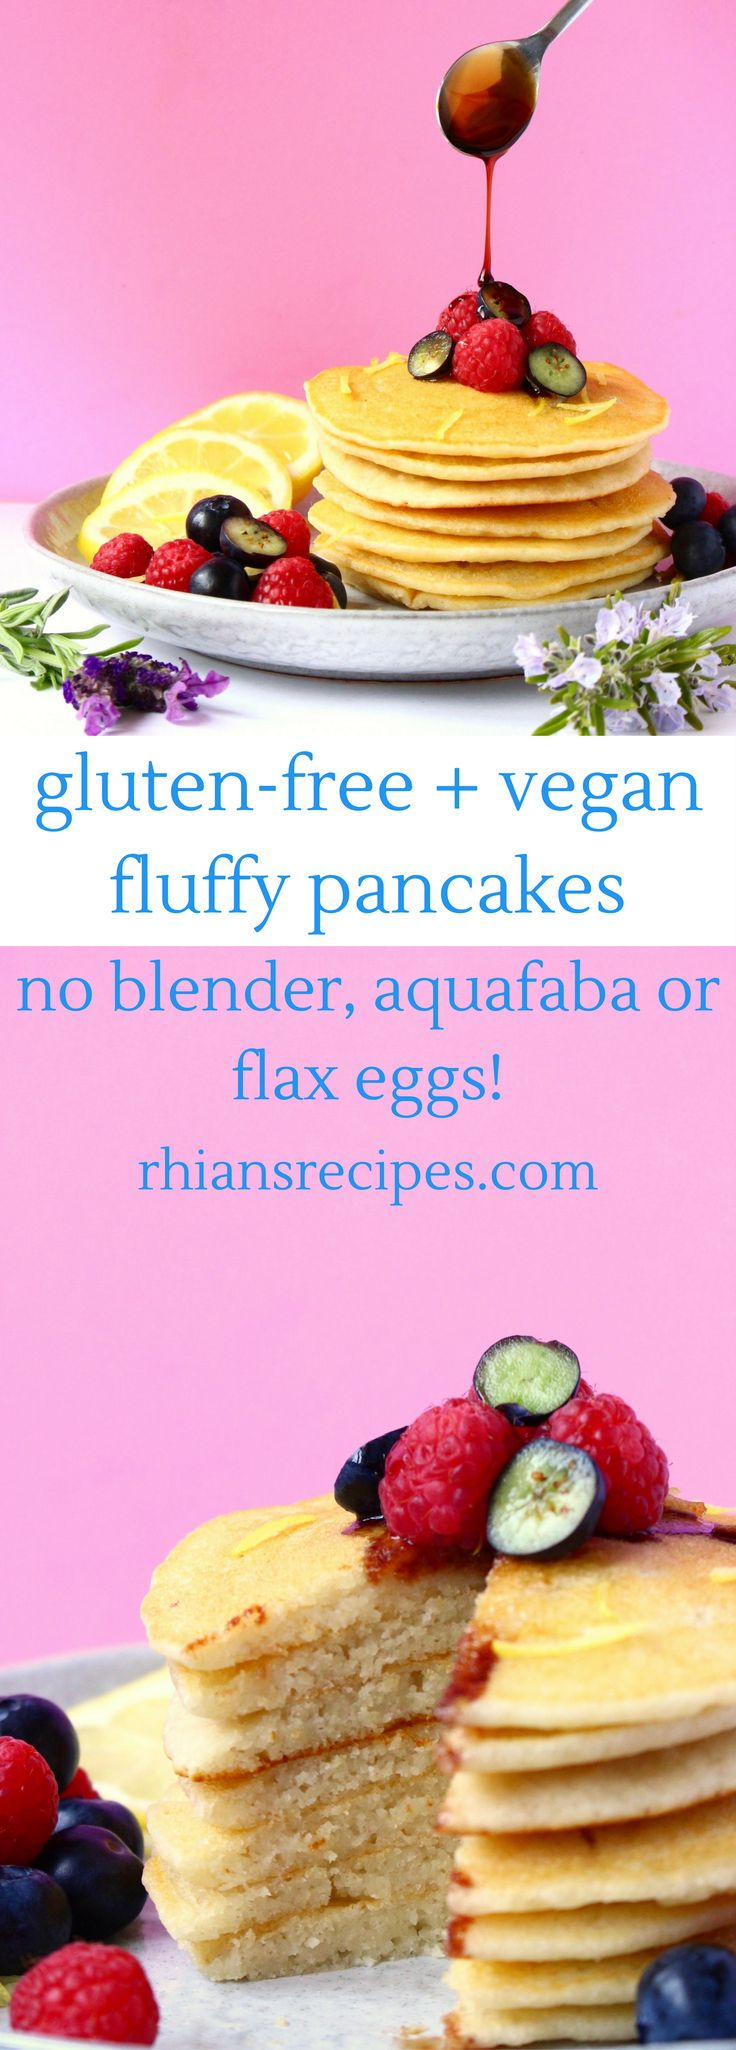 Gluten-free + vegan + refined sugar free Fluffy Pancakes! Super easy to make - no blender, aquafaba or flax eggs required!